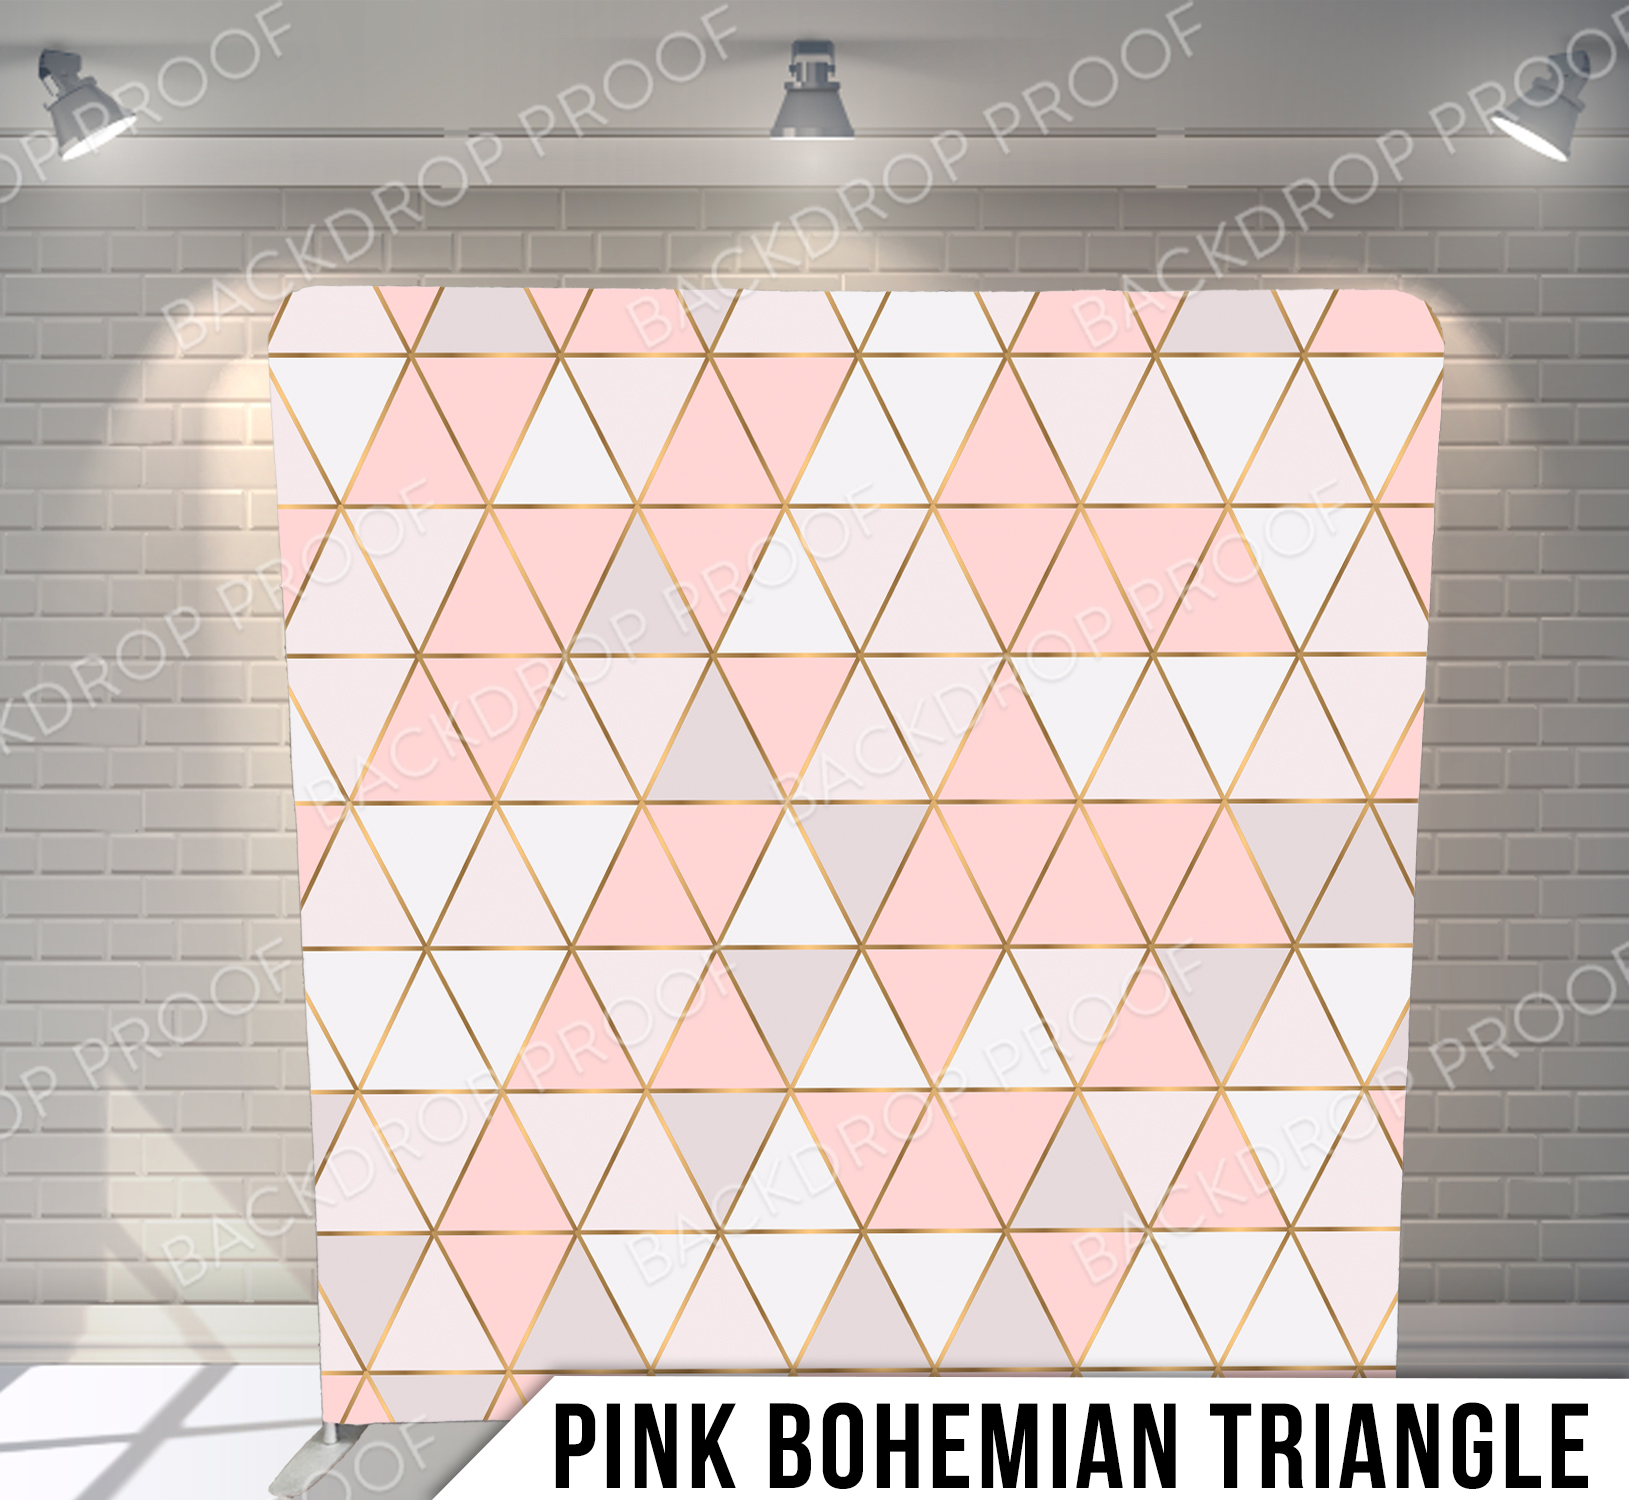 Pillow_PINKBOHEMIANTRIANGLE_G.jpg